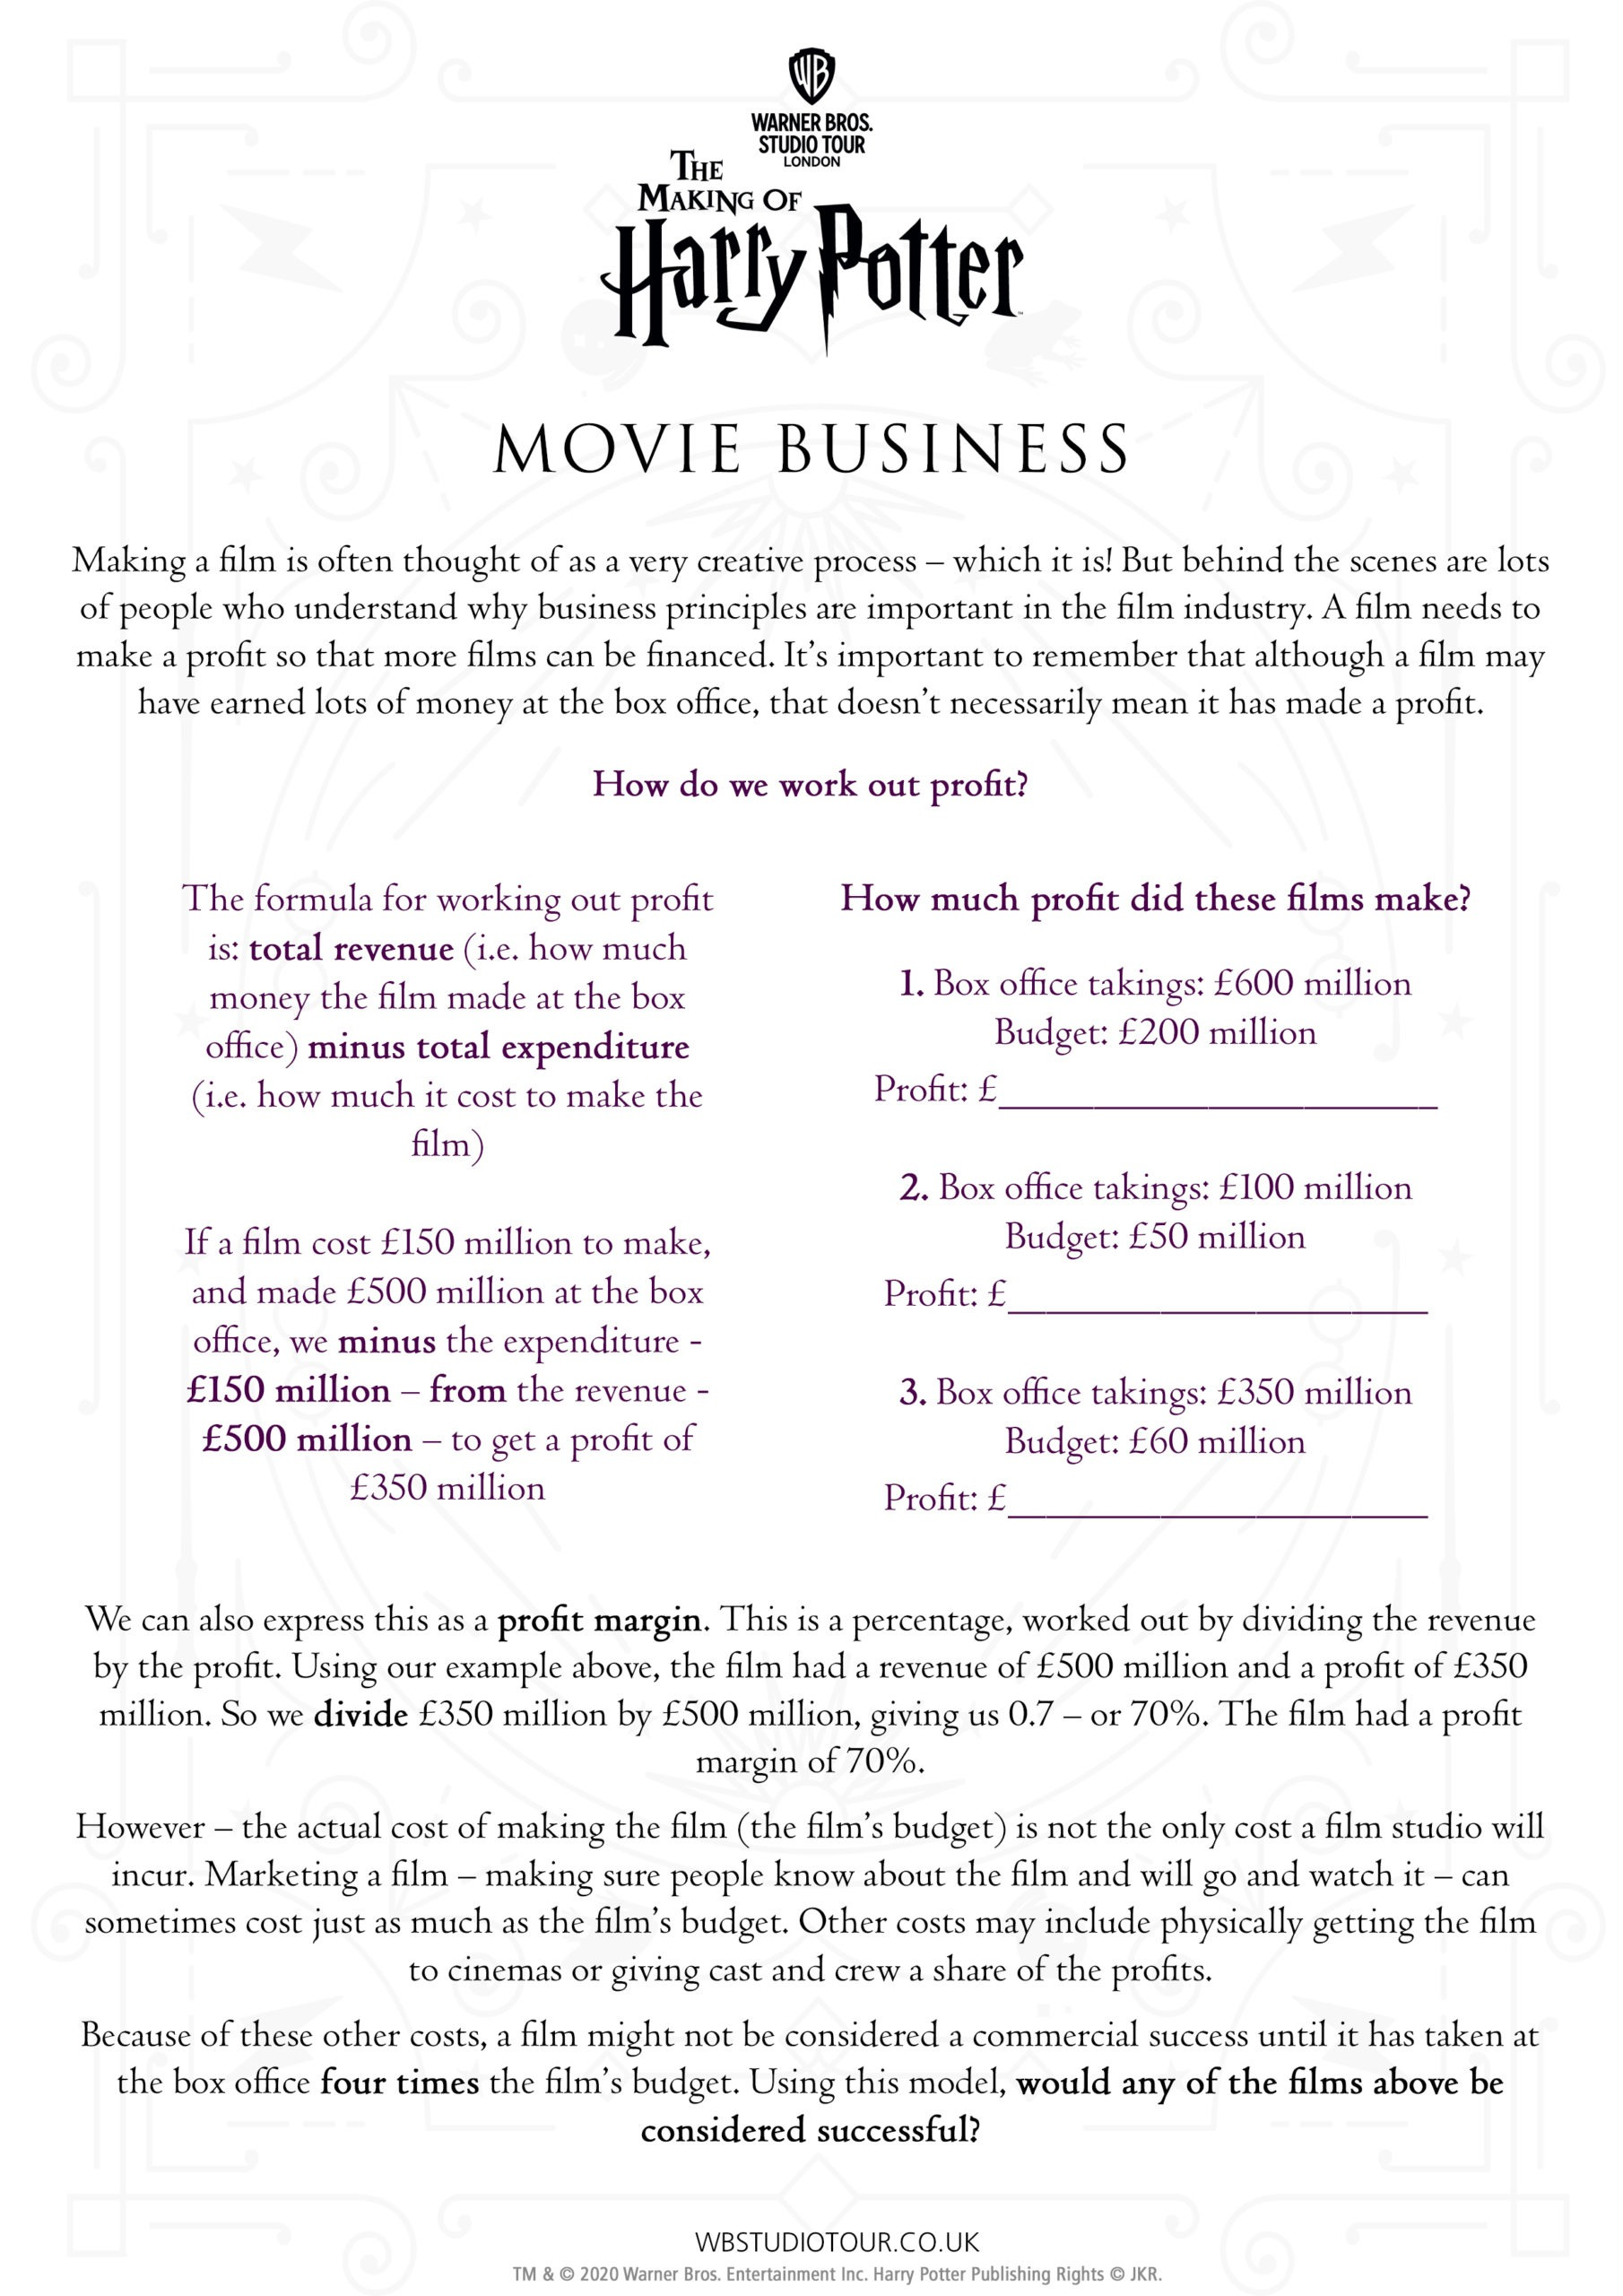 Movie Business Activity Sheet thumbnail